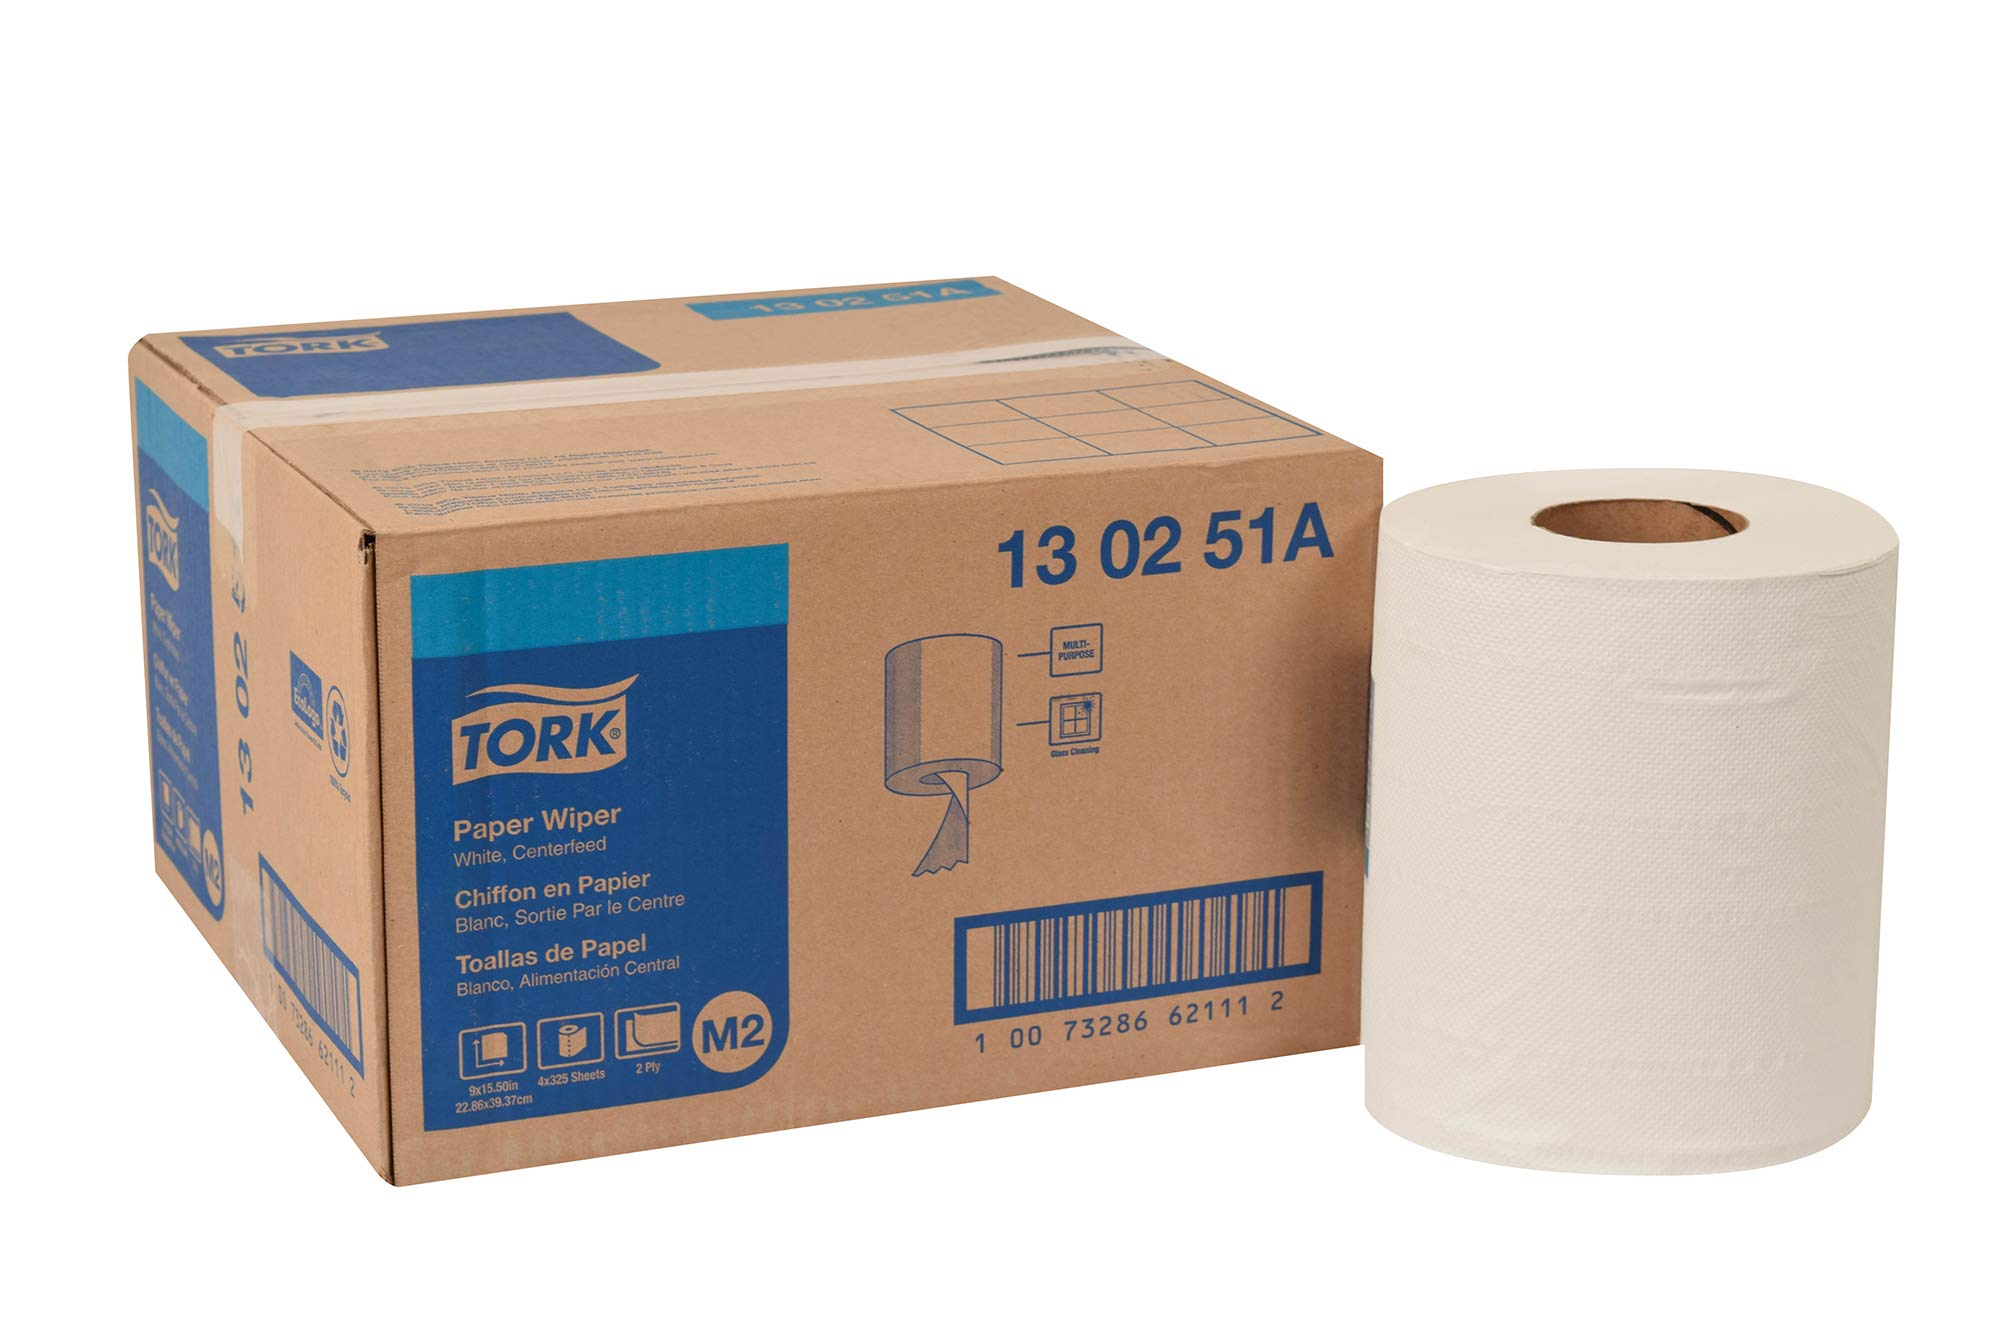 Tork 130251A Paper Wiper, Centerfeed, 2-Ply, 9.00'' Width x 419' Length, White (Case of 4 Rolls, 325 per Roll, 1,300 Wipers per Case) For use with Tork 659020 or 653028